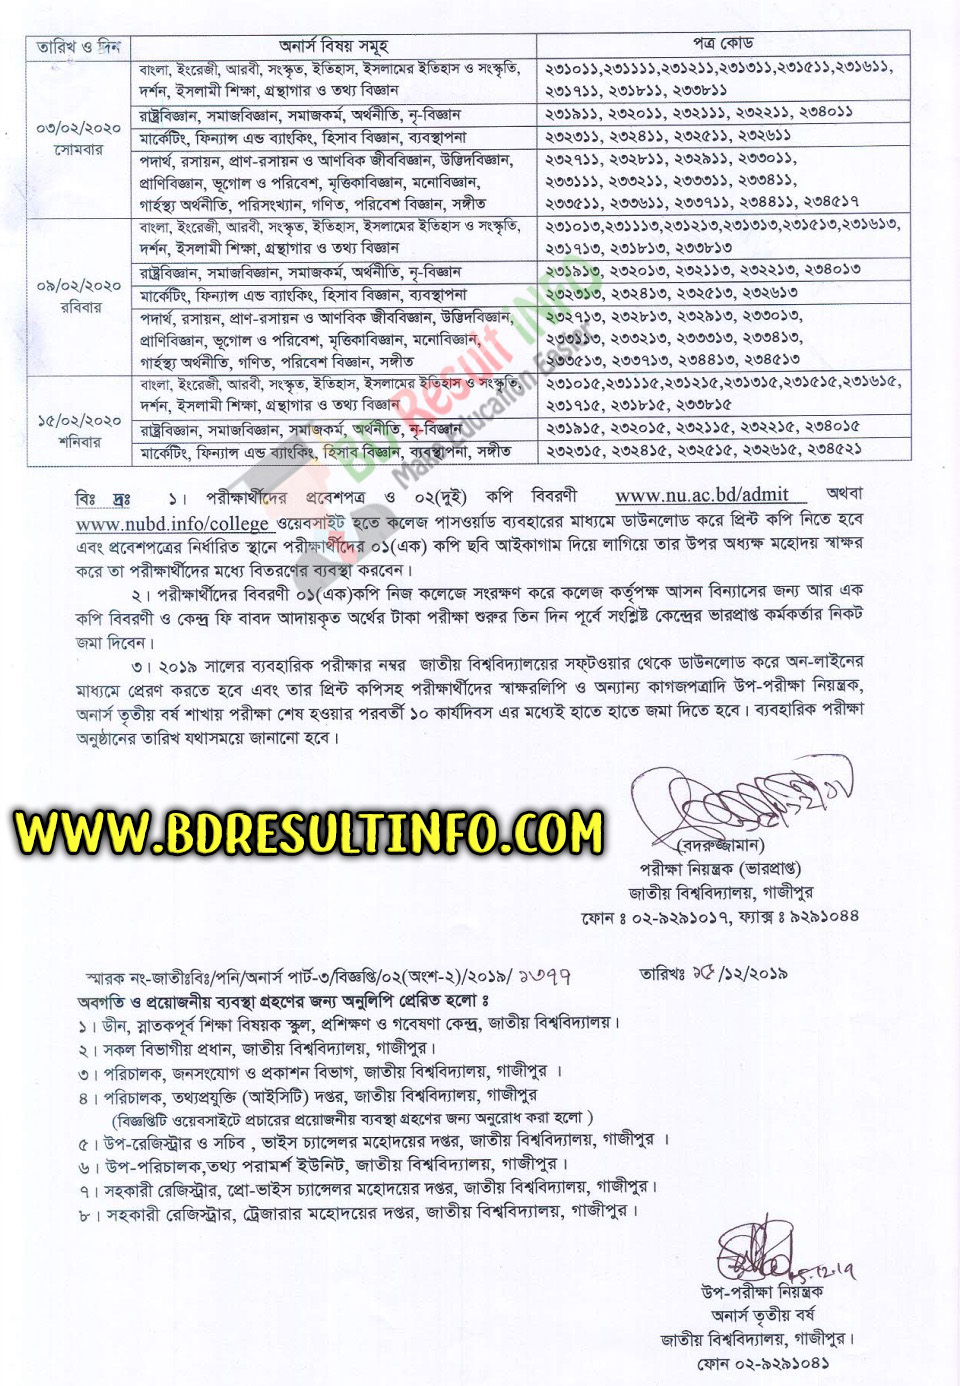 Download Honours 3rd Year Exam Routine 2019